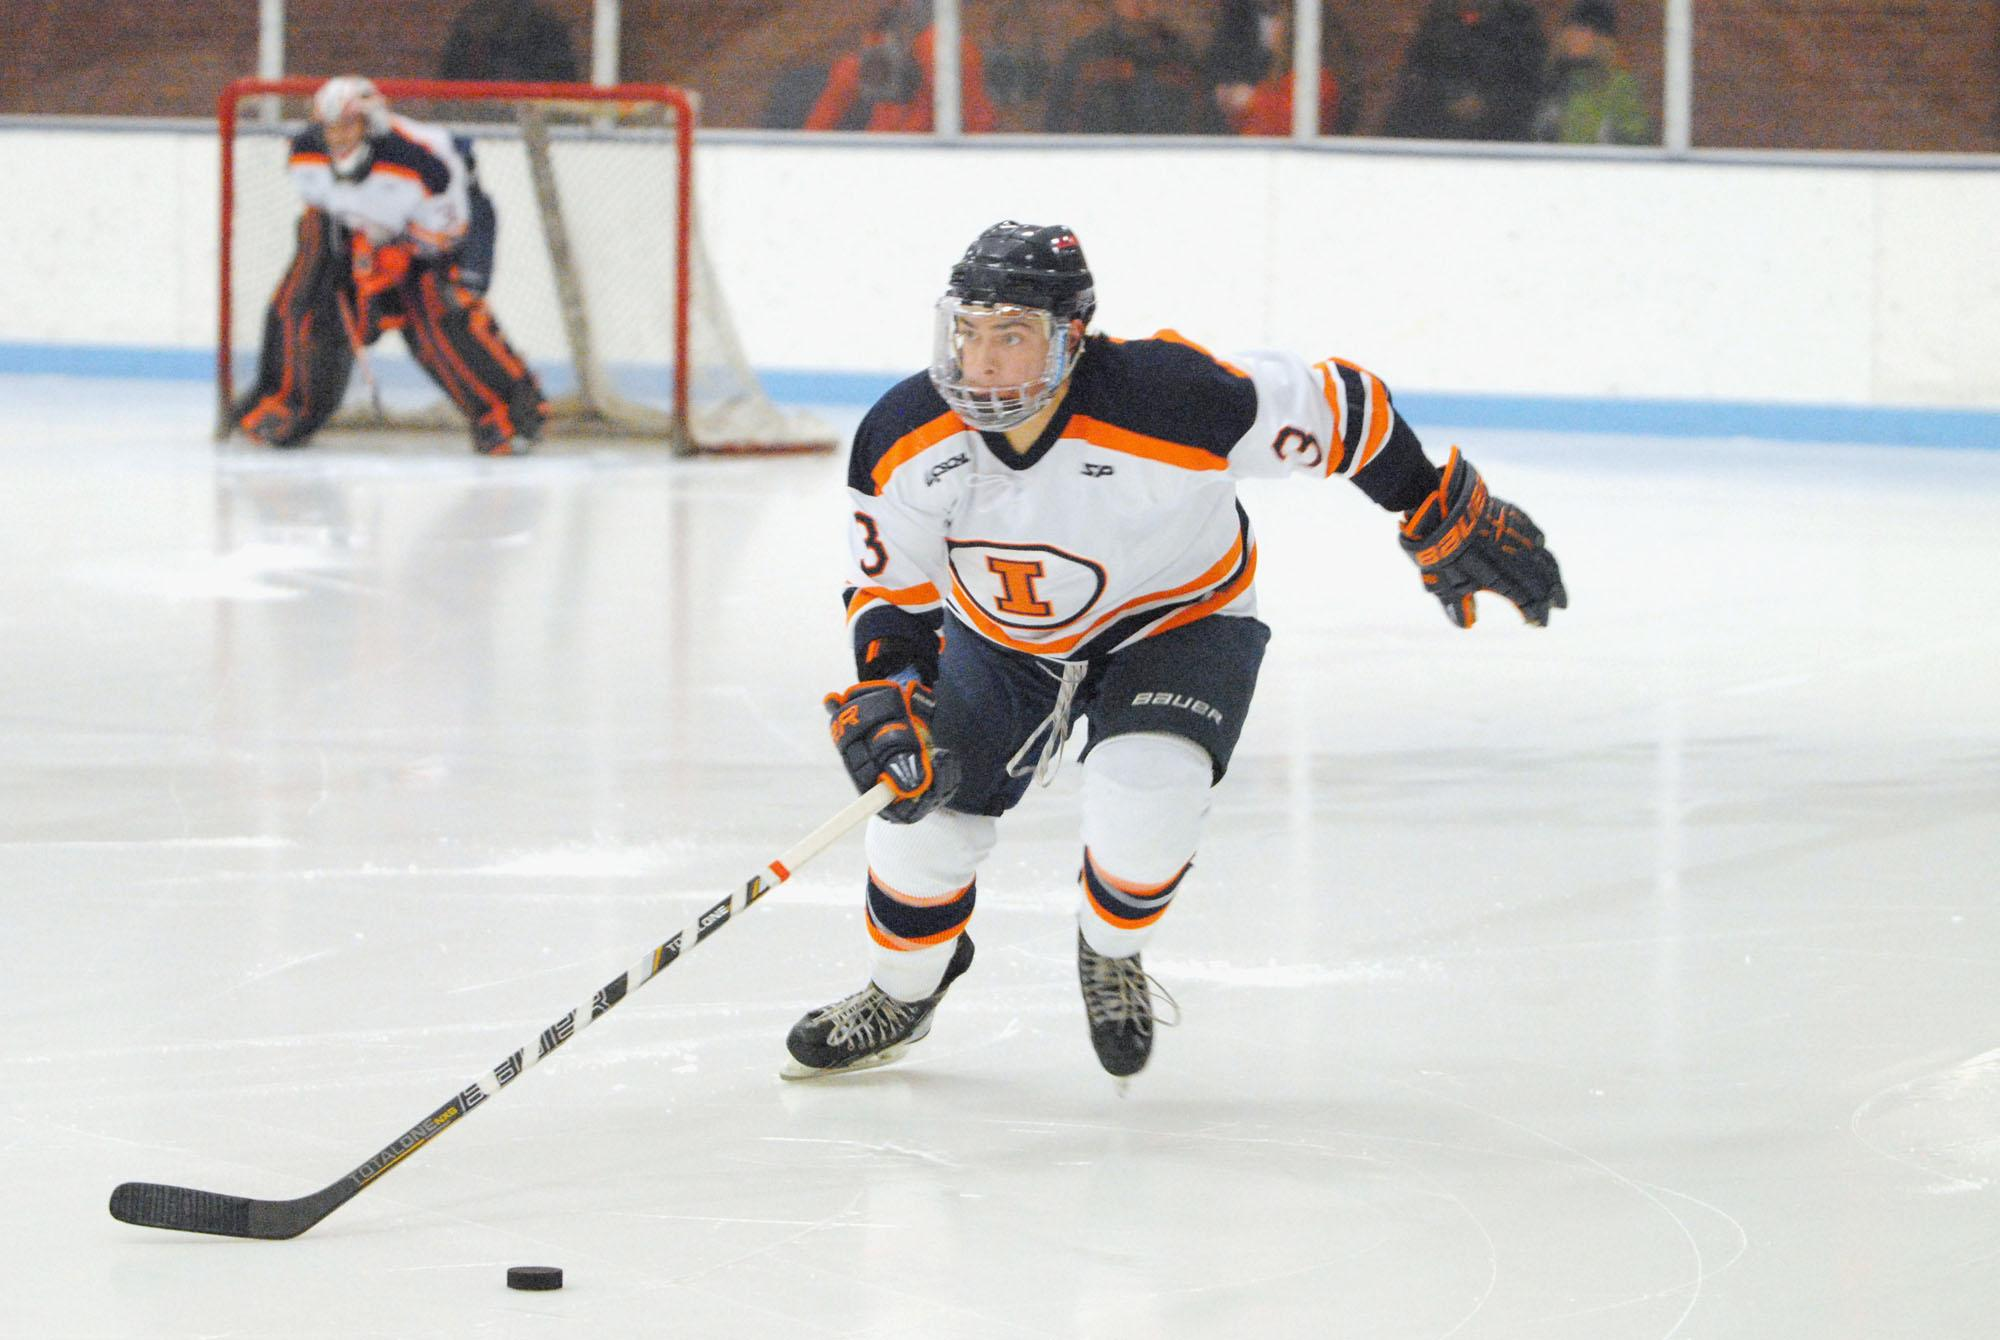 Illini+columnist+Kevin+McCarthy+sat+down+with+Illinois+hockeys+Austin+Zima+for+a+chat+about+hockey+fights%2C+great+hair+and+his+late-night+dance+moves.